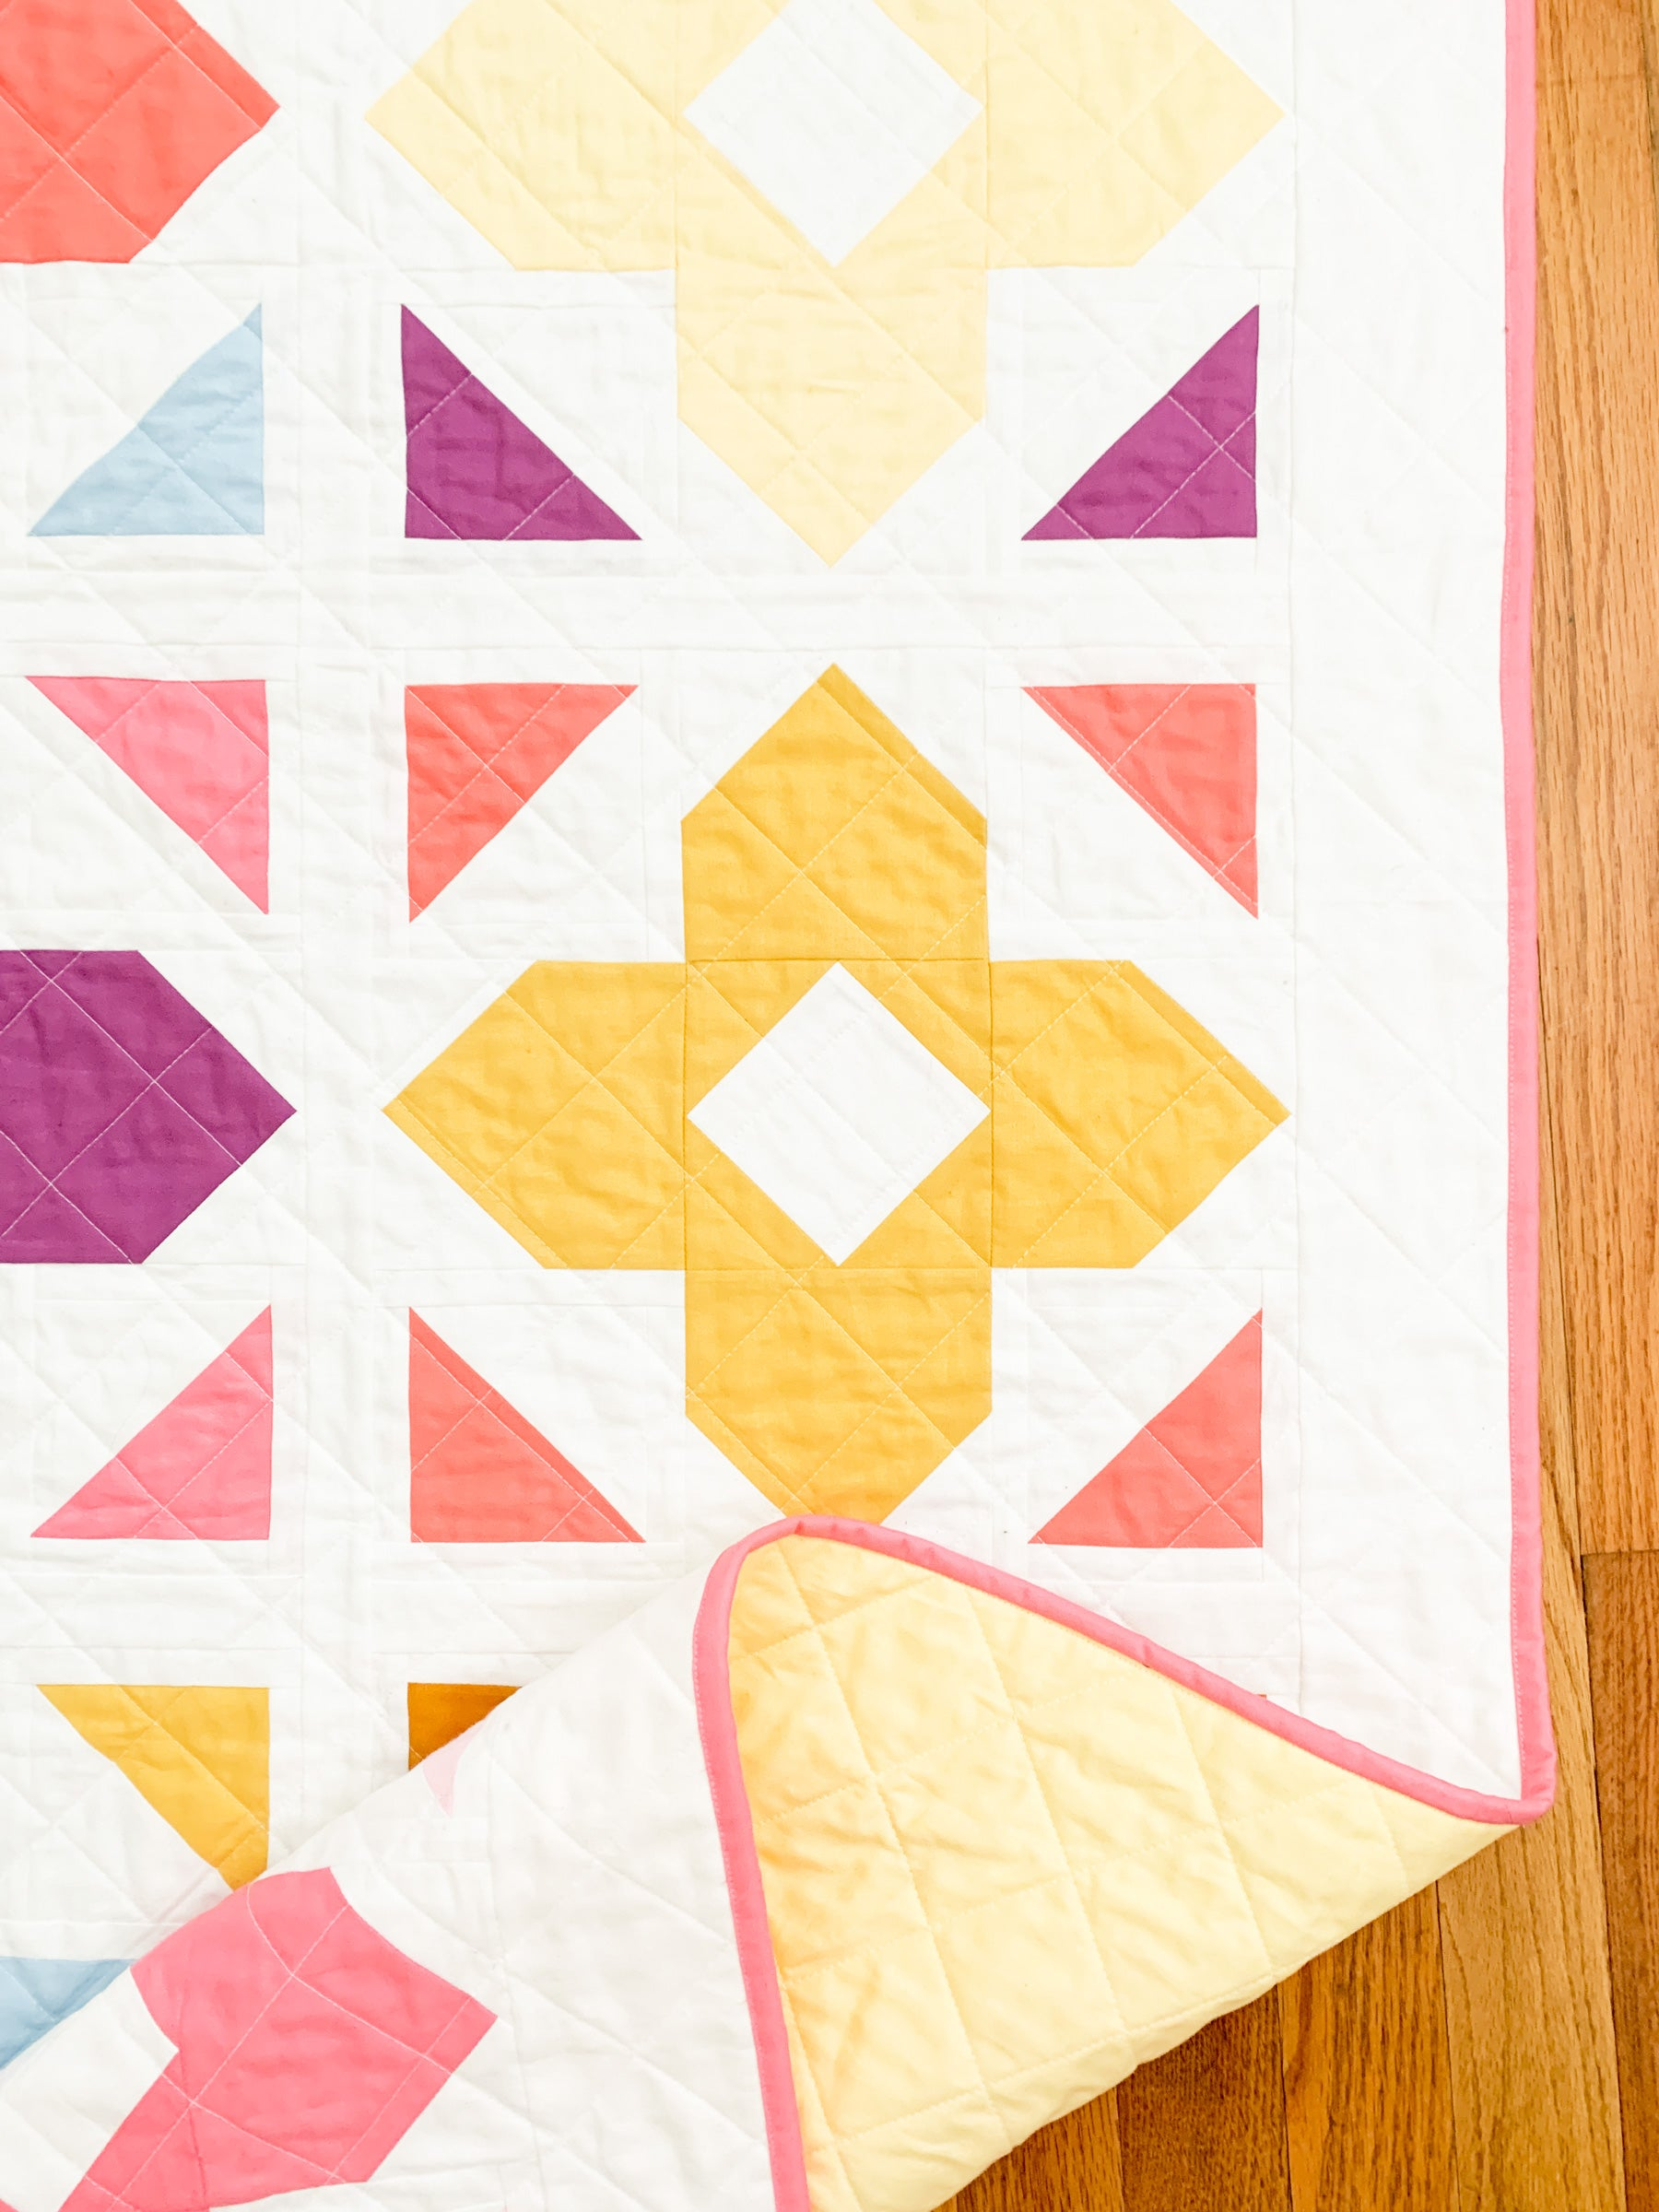 Luminaries quilt pattern by Cotton and Joy is a fun and modern, FQ friendly quilt pattern.